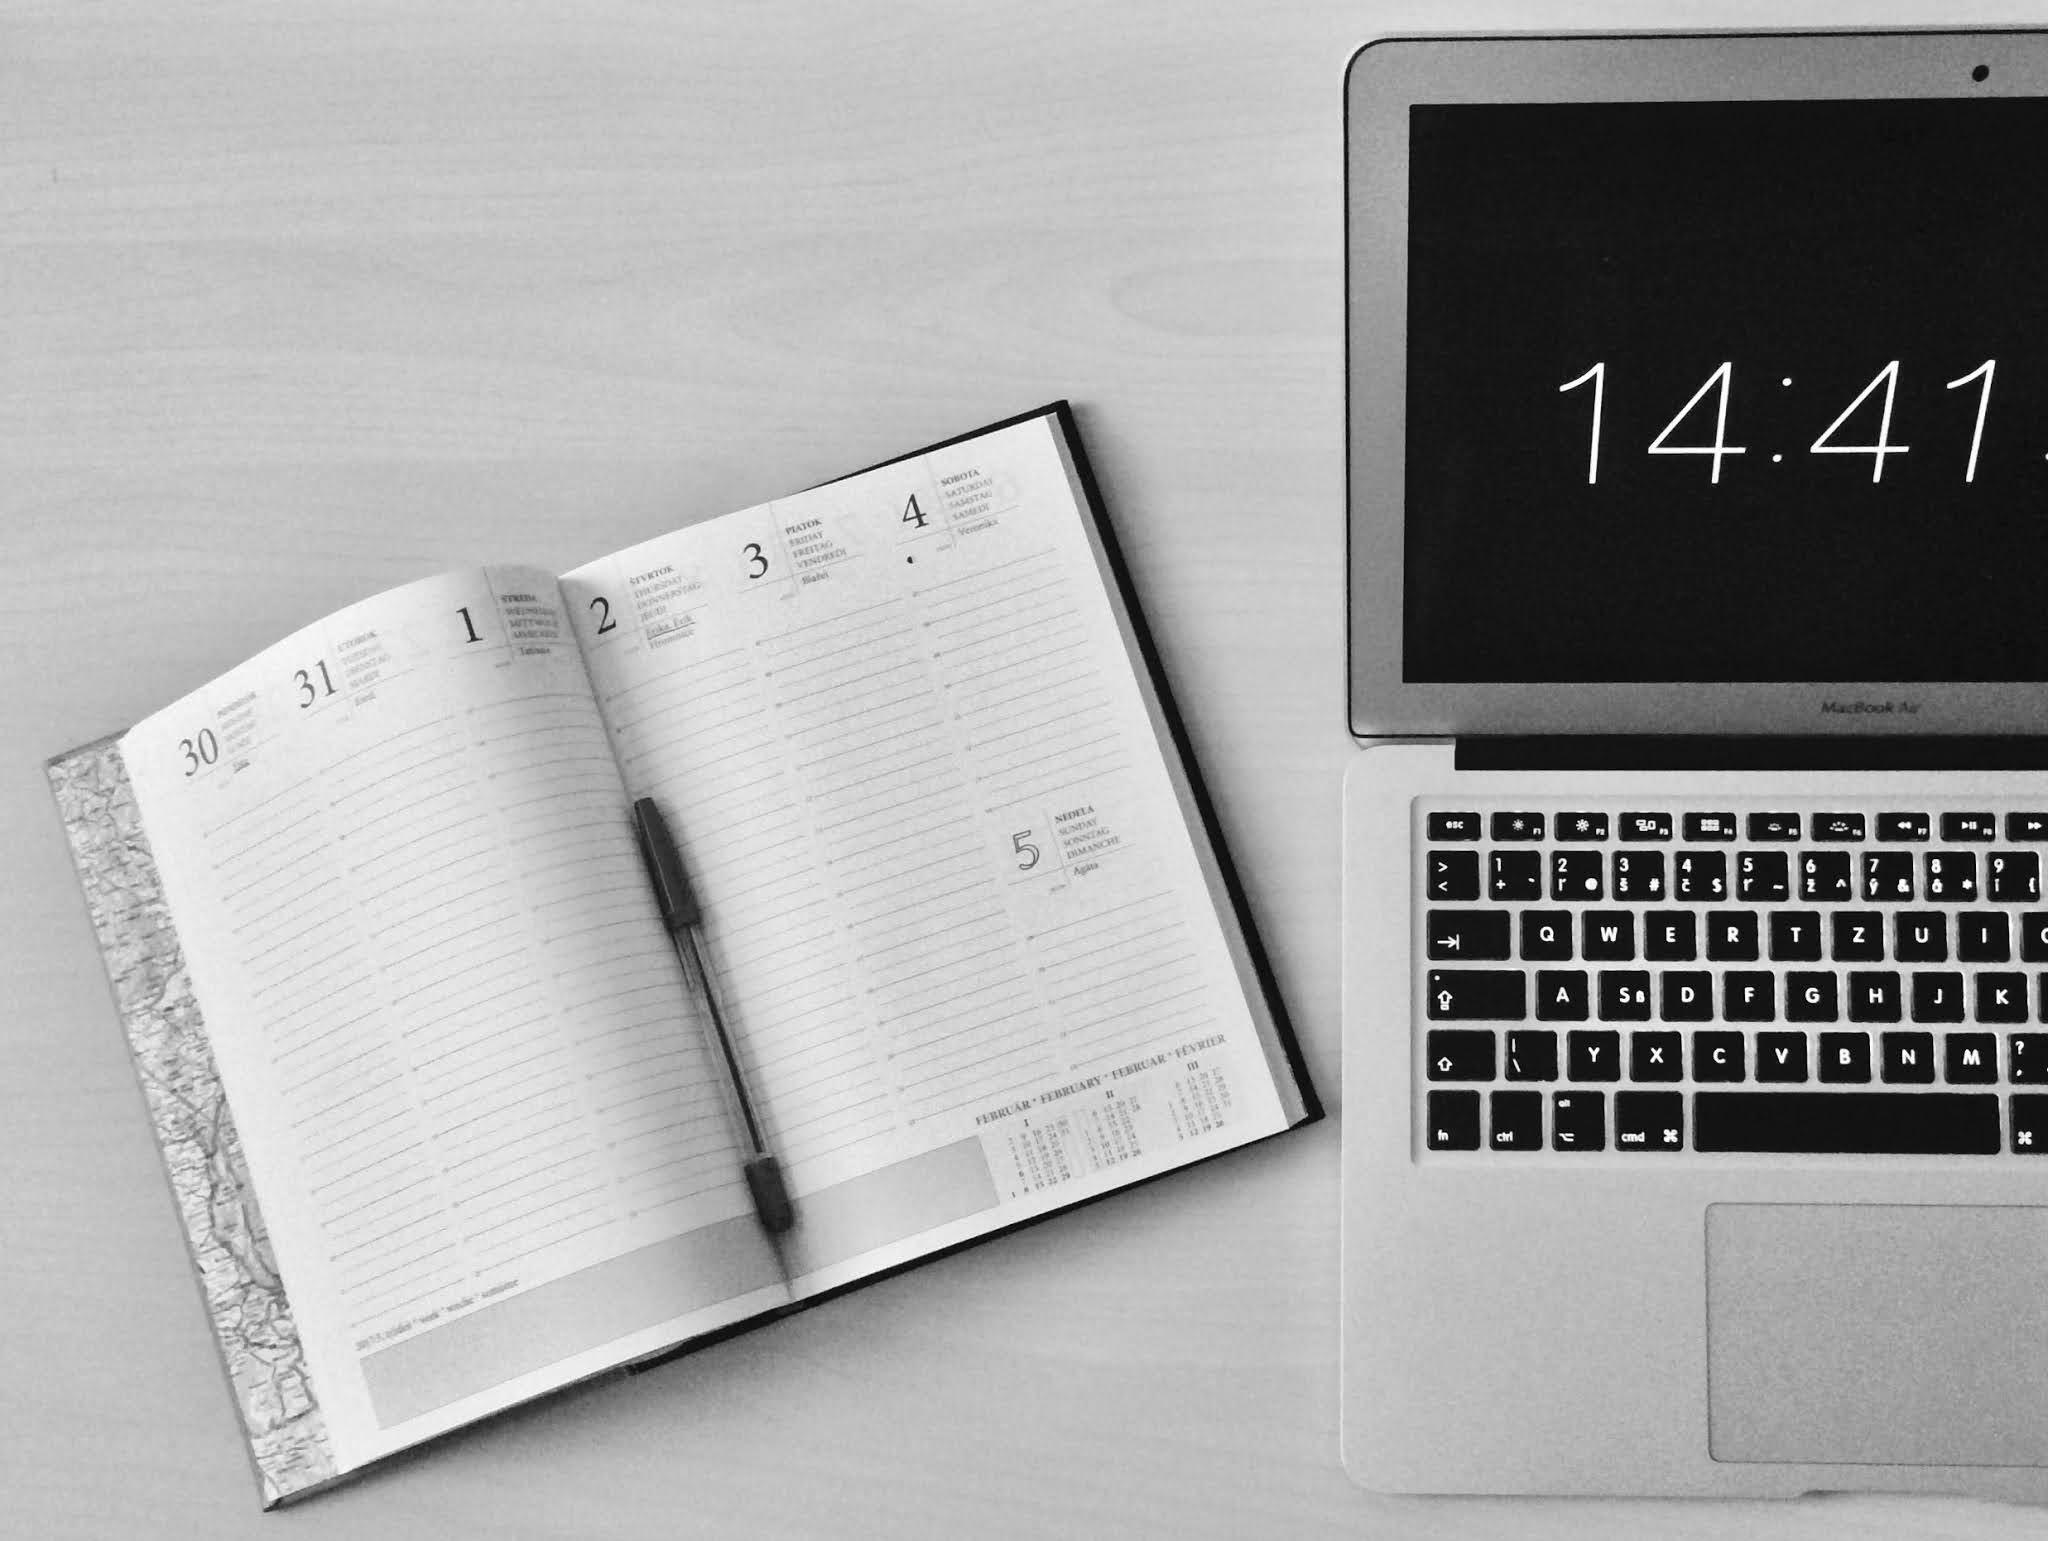 flat lay photograph of notebook and macbook next to each other